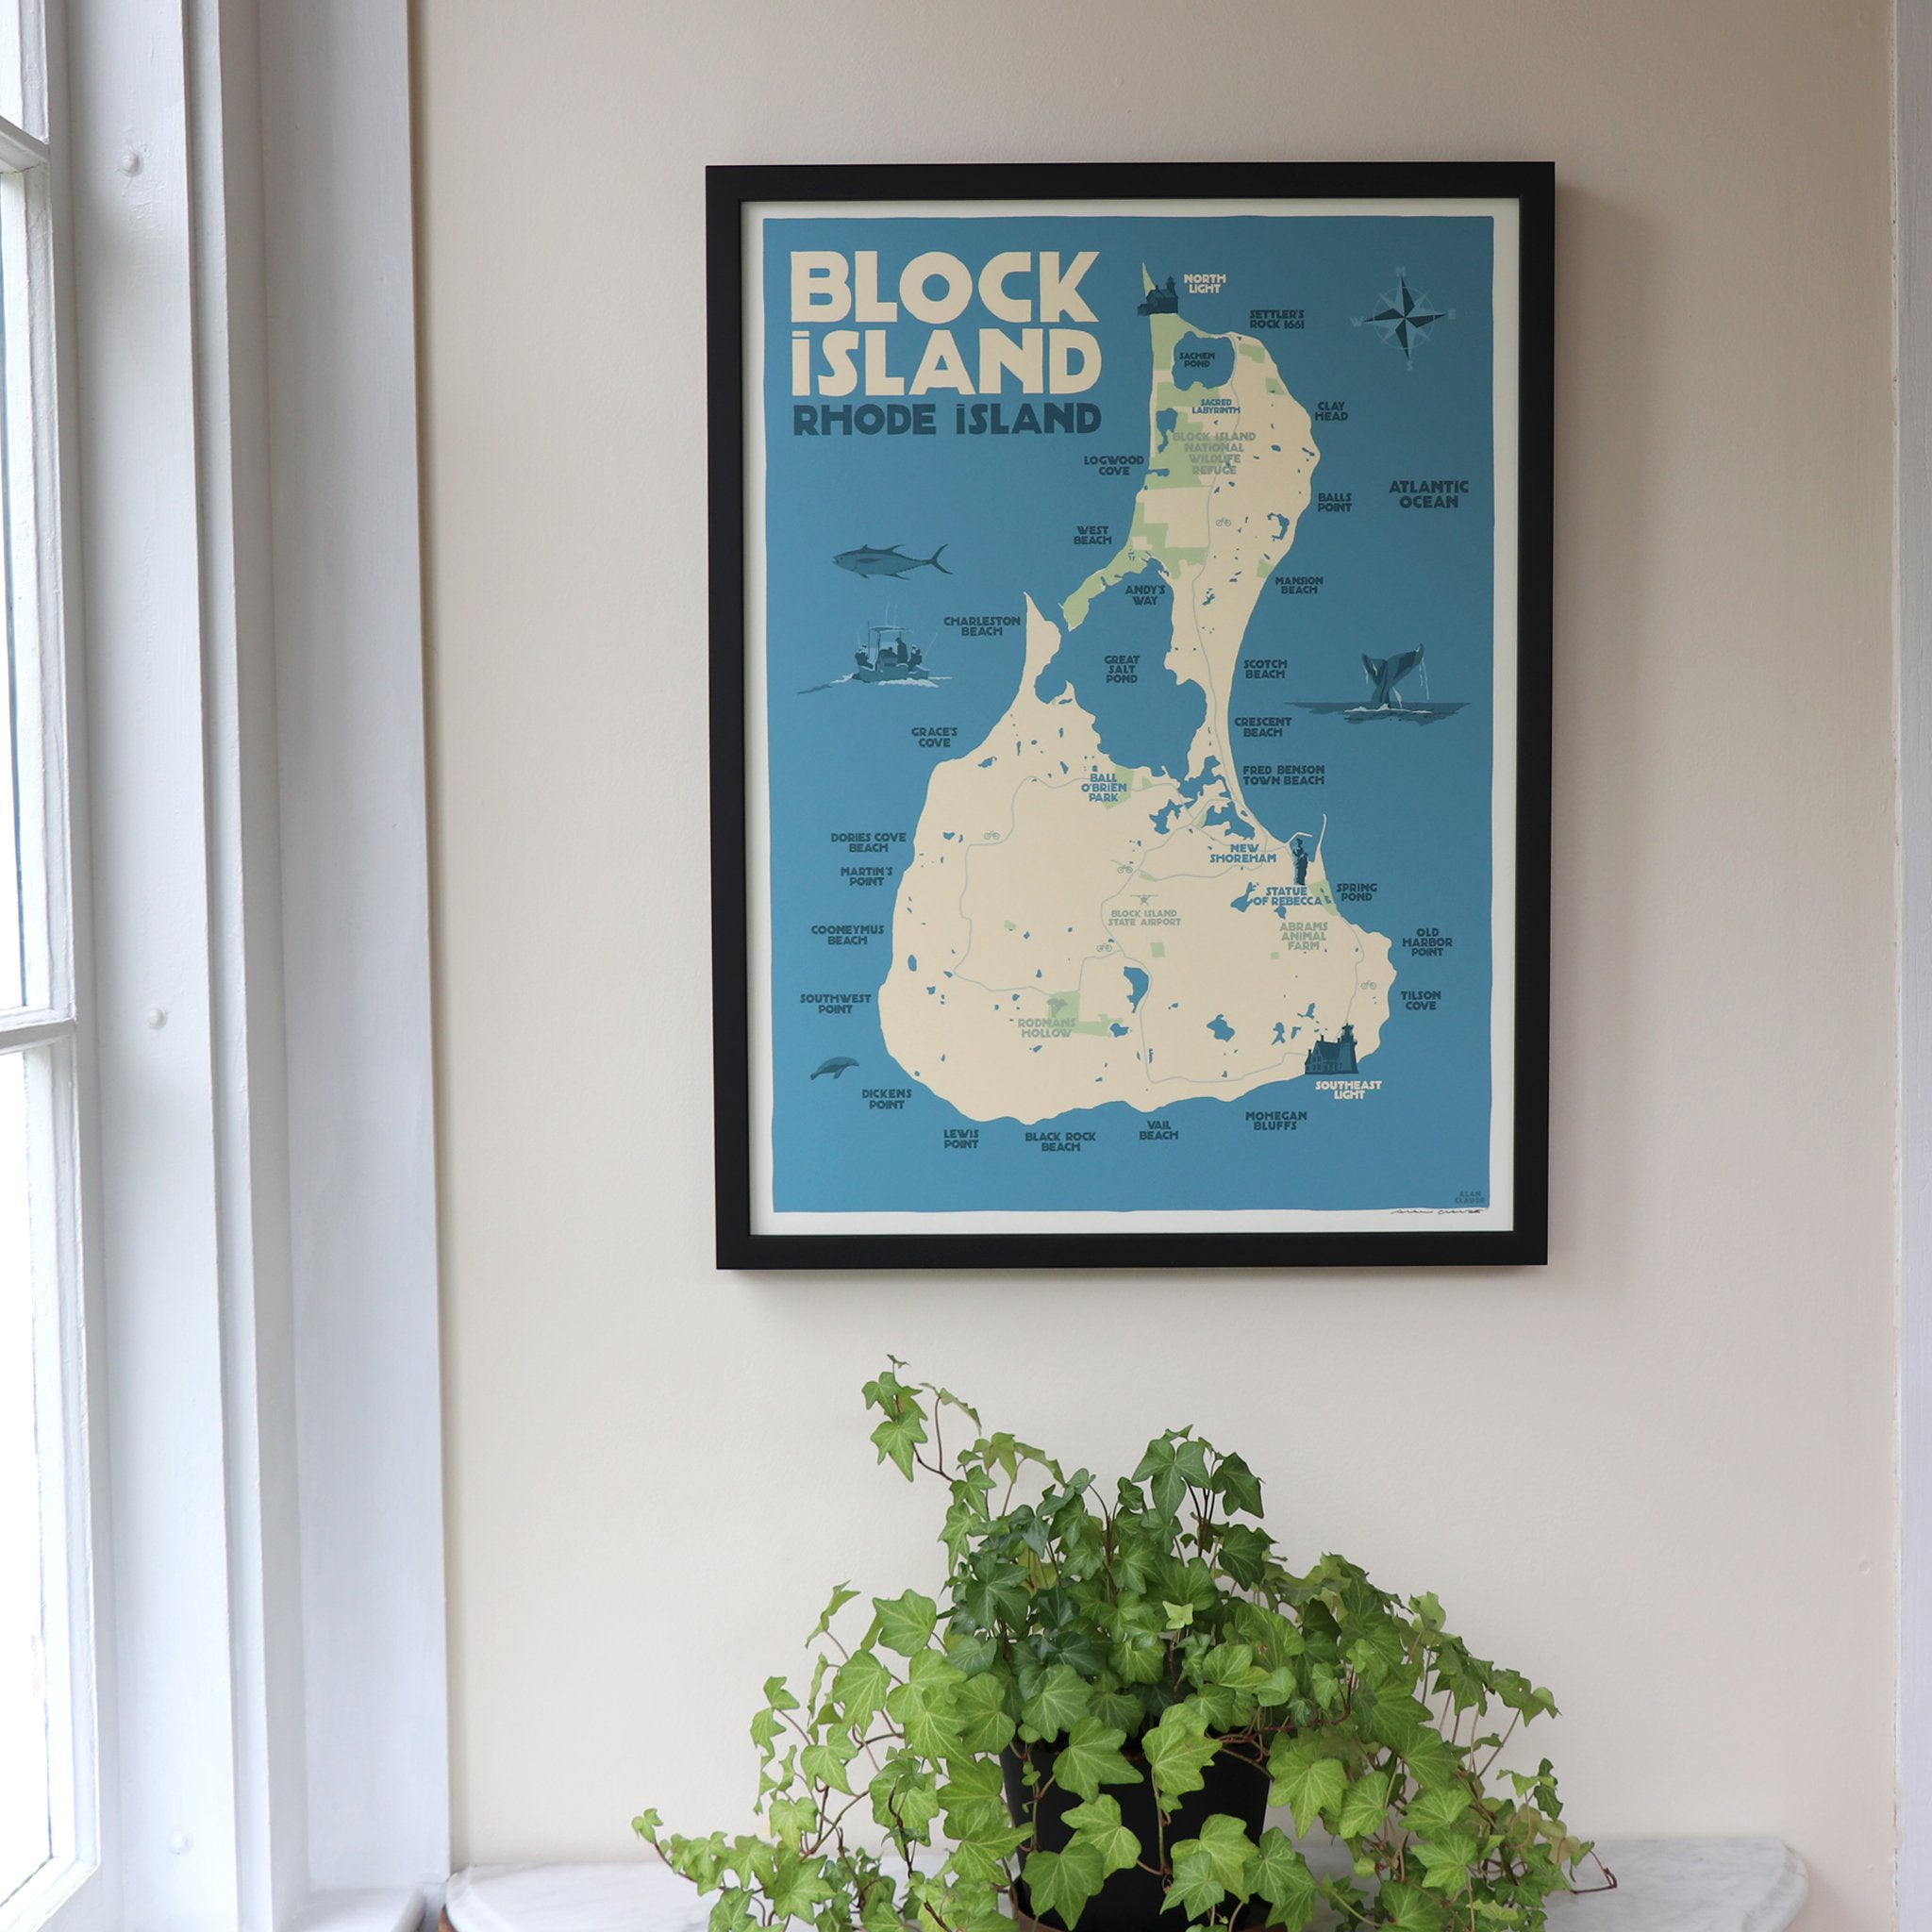 "Block Island Map Art Print Framed 18"" x 24"" Travel Poster - Rhode Island"